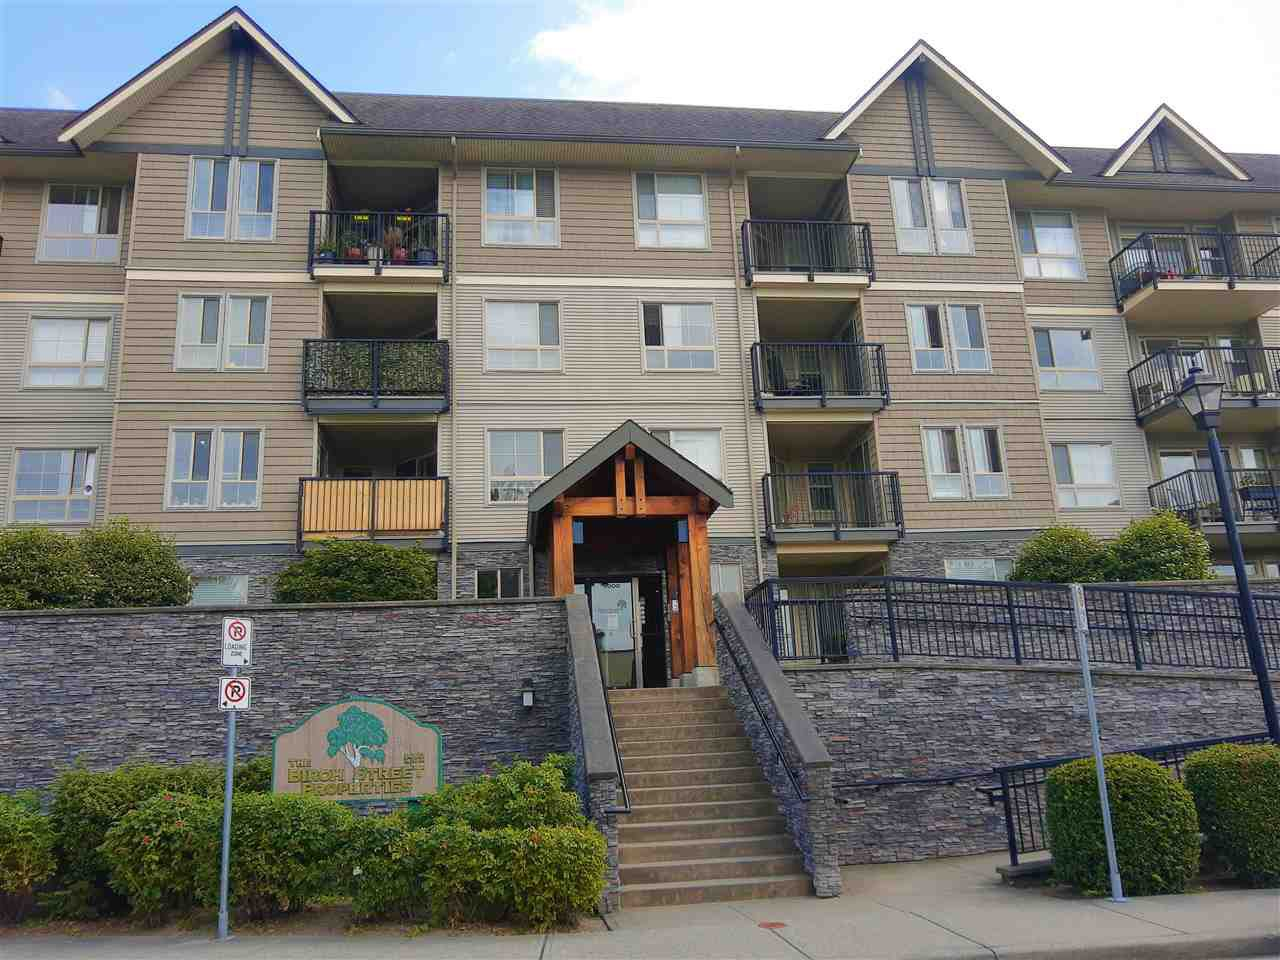 """Main Photo: 311 9000 BIRCH Street in Chilliwack: Chilliwack W Young-Well Condo for sale in """"The Birch Street Properties"""" : MLS®# R2486735"""